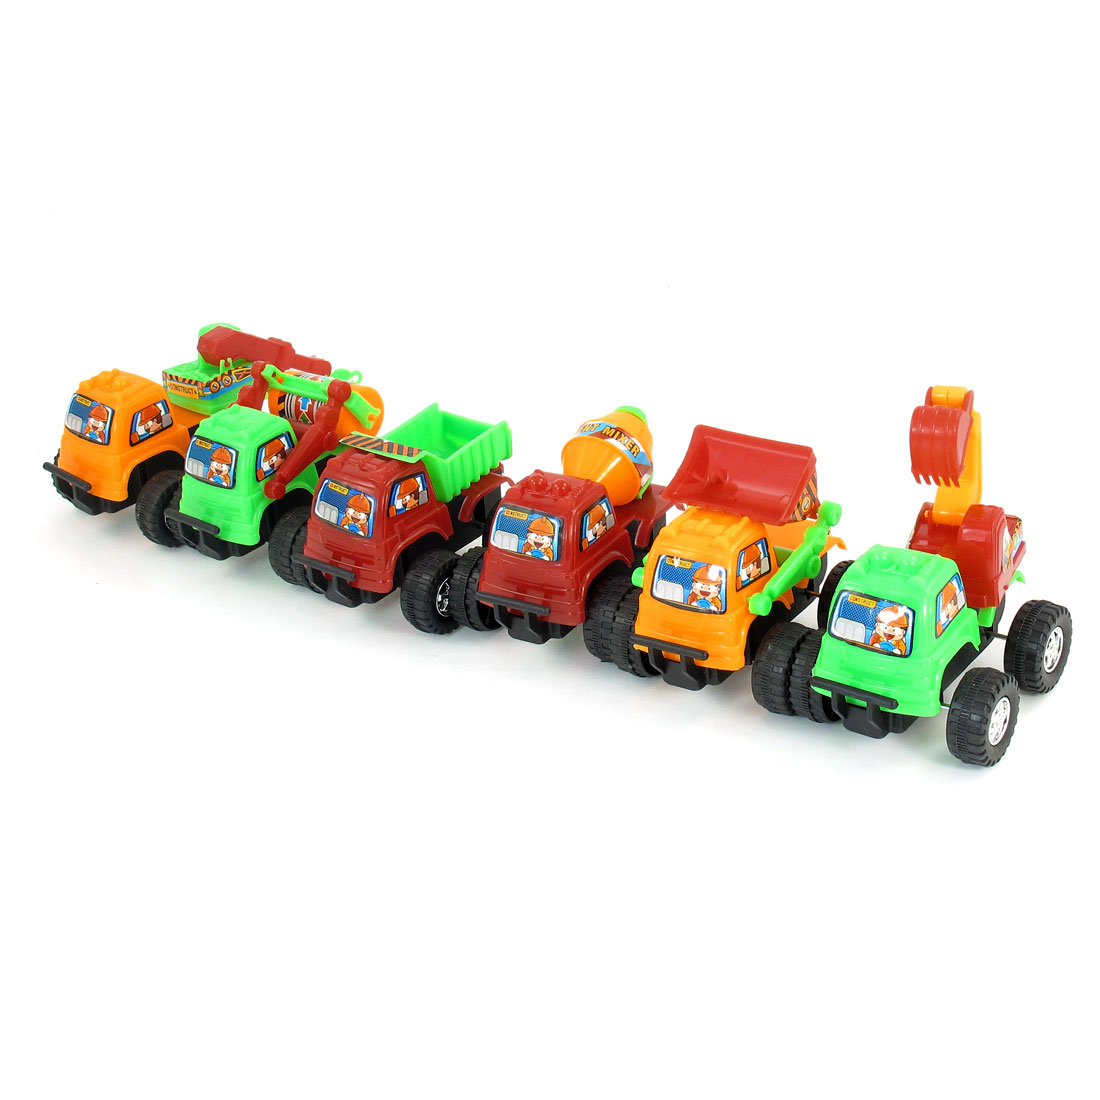 6 Pcs Green Red Orange Plastic Navvy Cement Mixer Truck Model Toy for Children